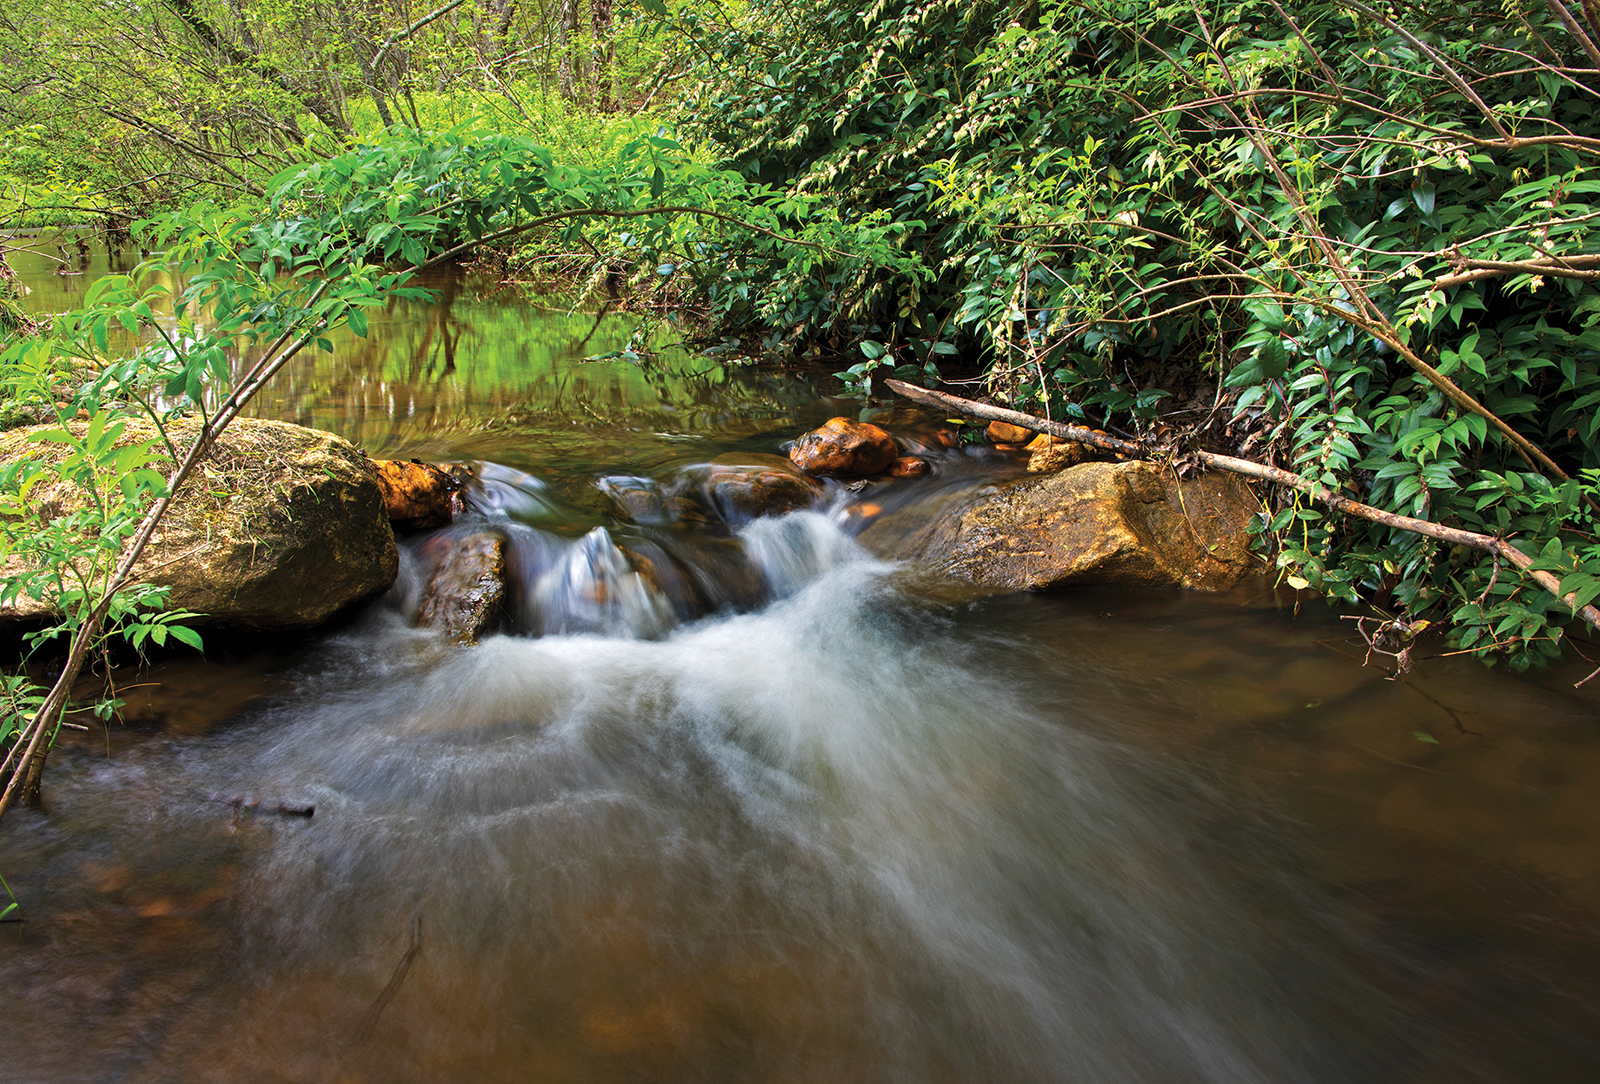 highlands-cashiers-land-trust-nc-kevin-fitzpatric-stream